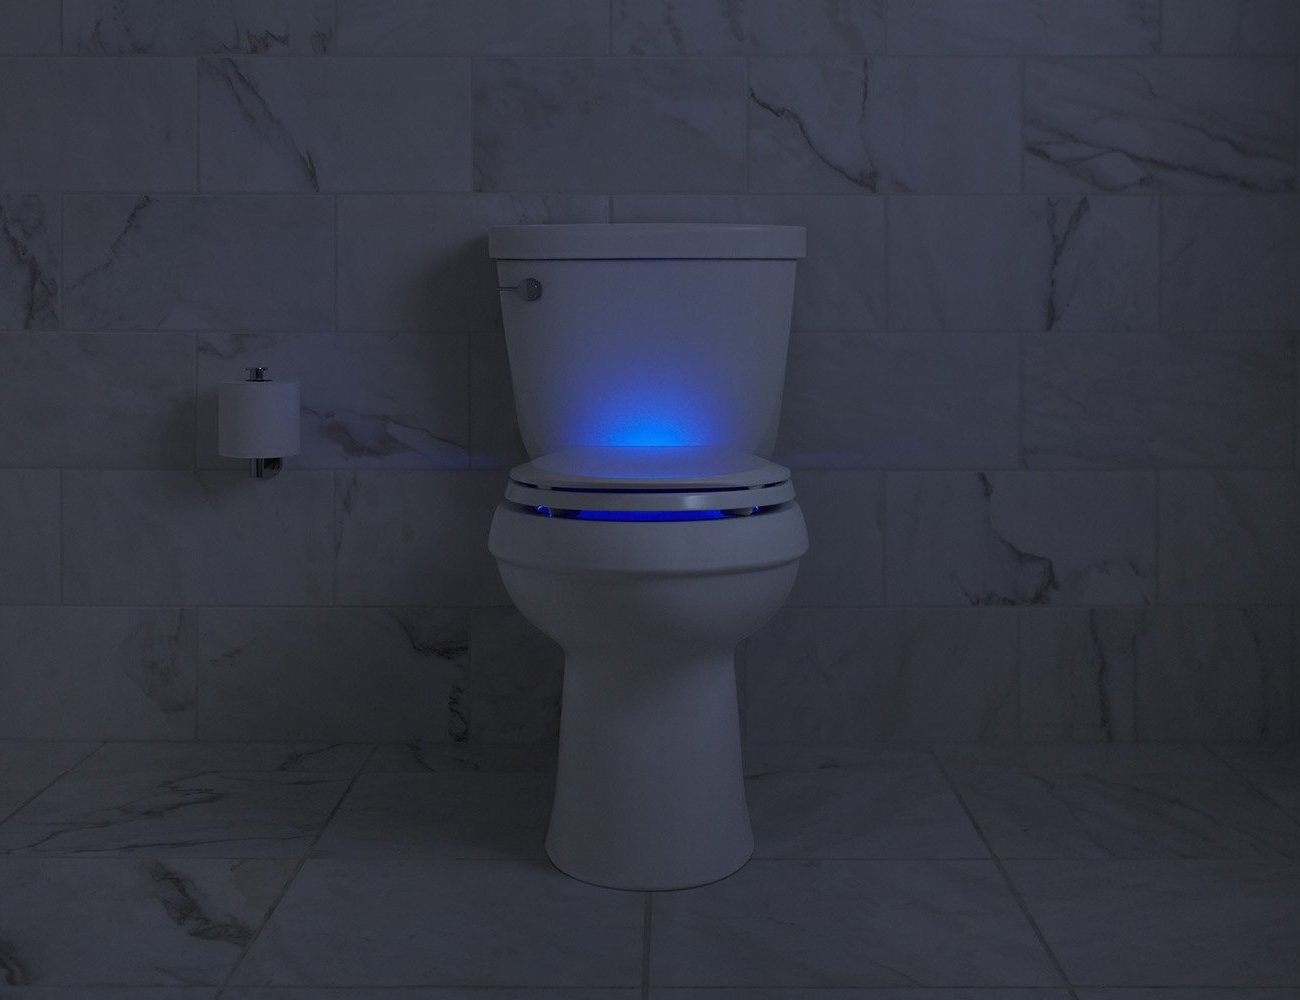 Sound Activated Nightlight Toilet Seat 187 Review